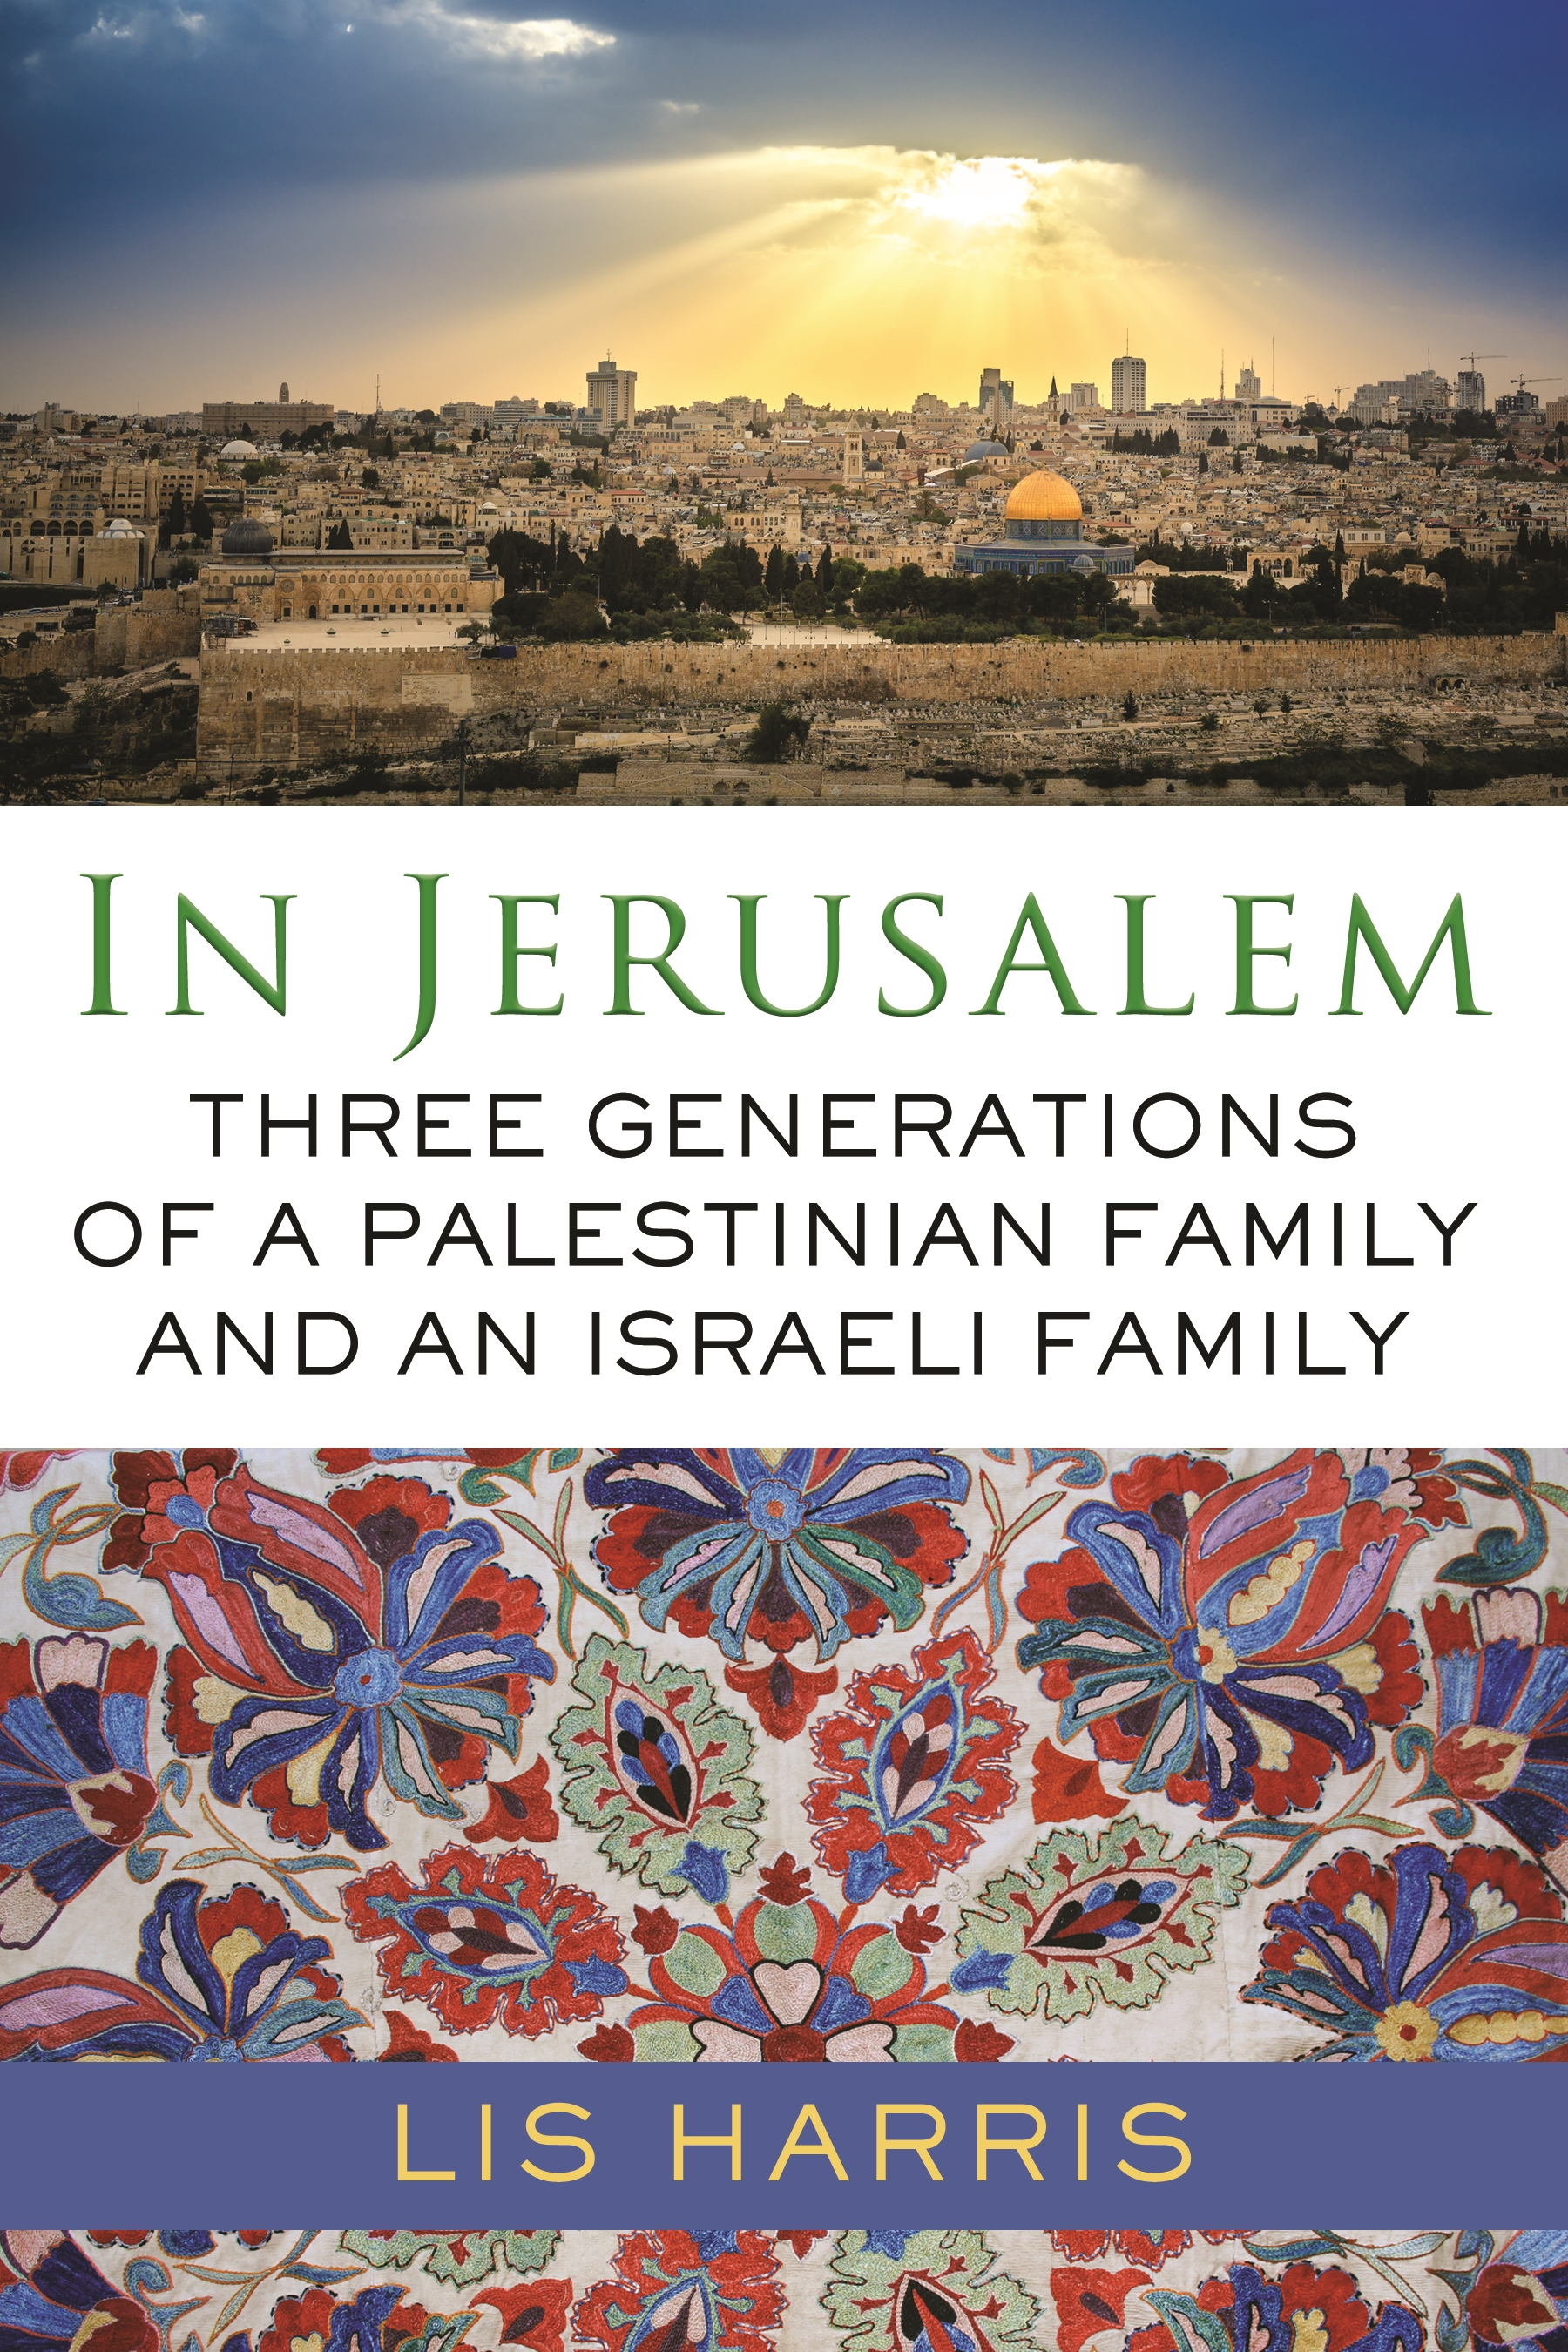 Book Launch: In Jerusalem by Lis Harris in conversation with Adrian Nicole LeBlanc